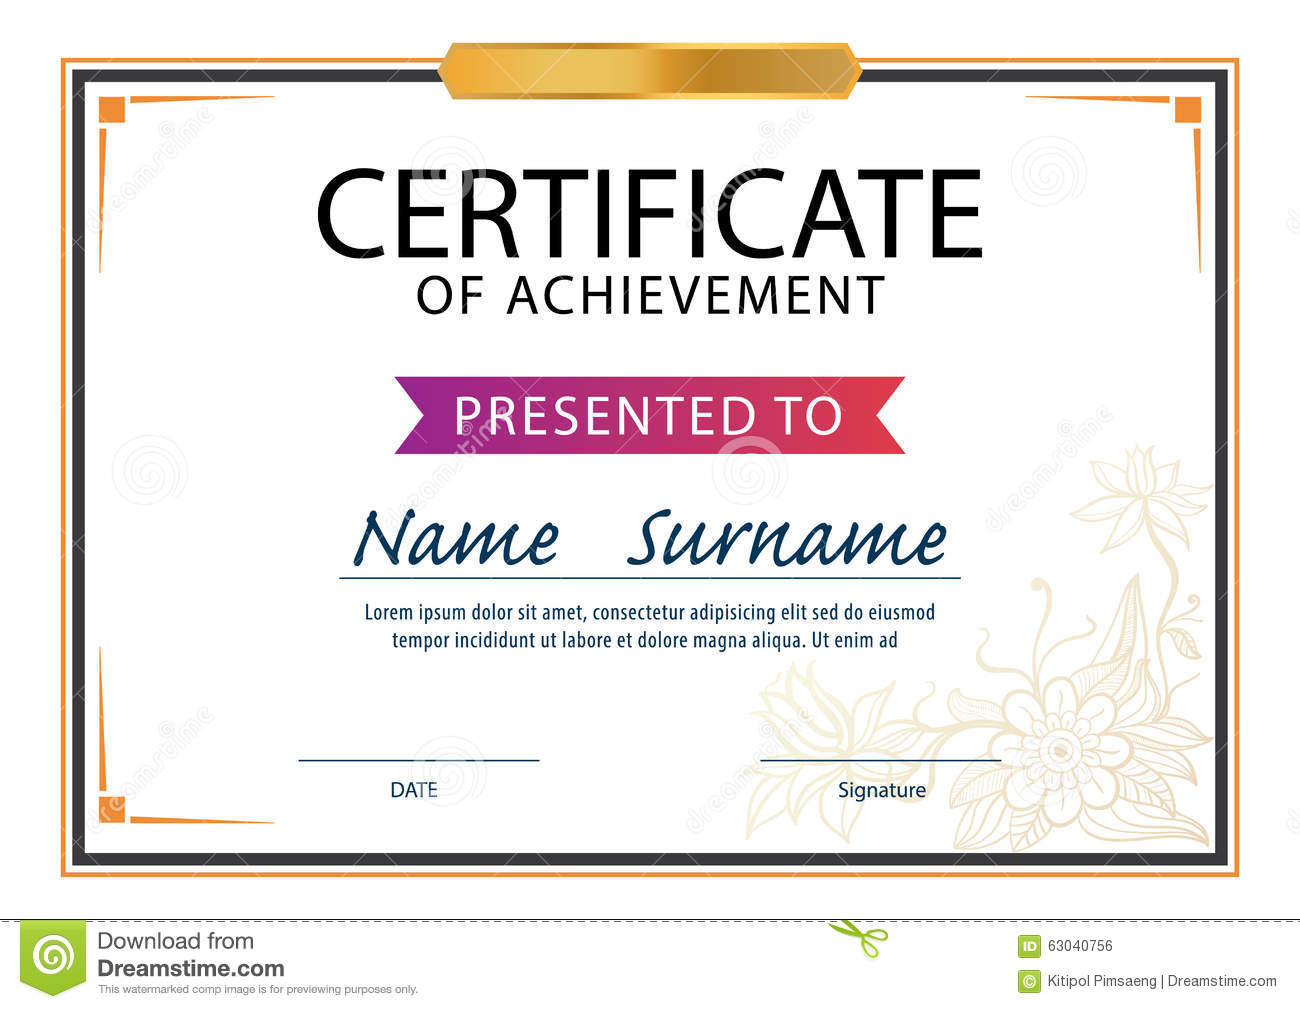 Certificate Templatediploma Layouta4 Size Illustration 63040756